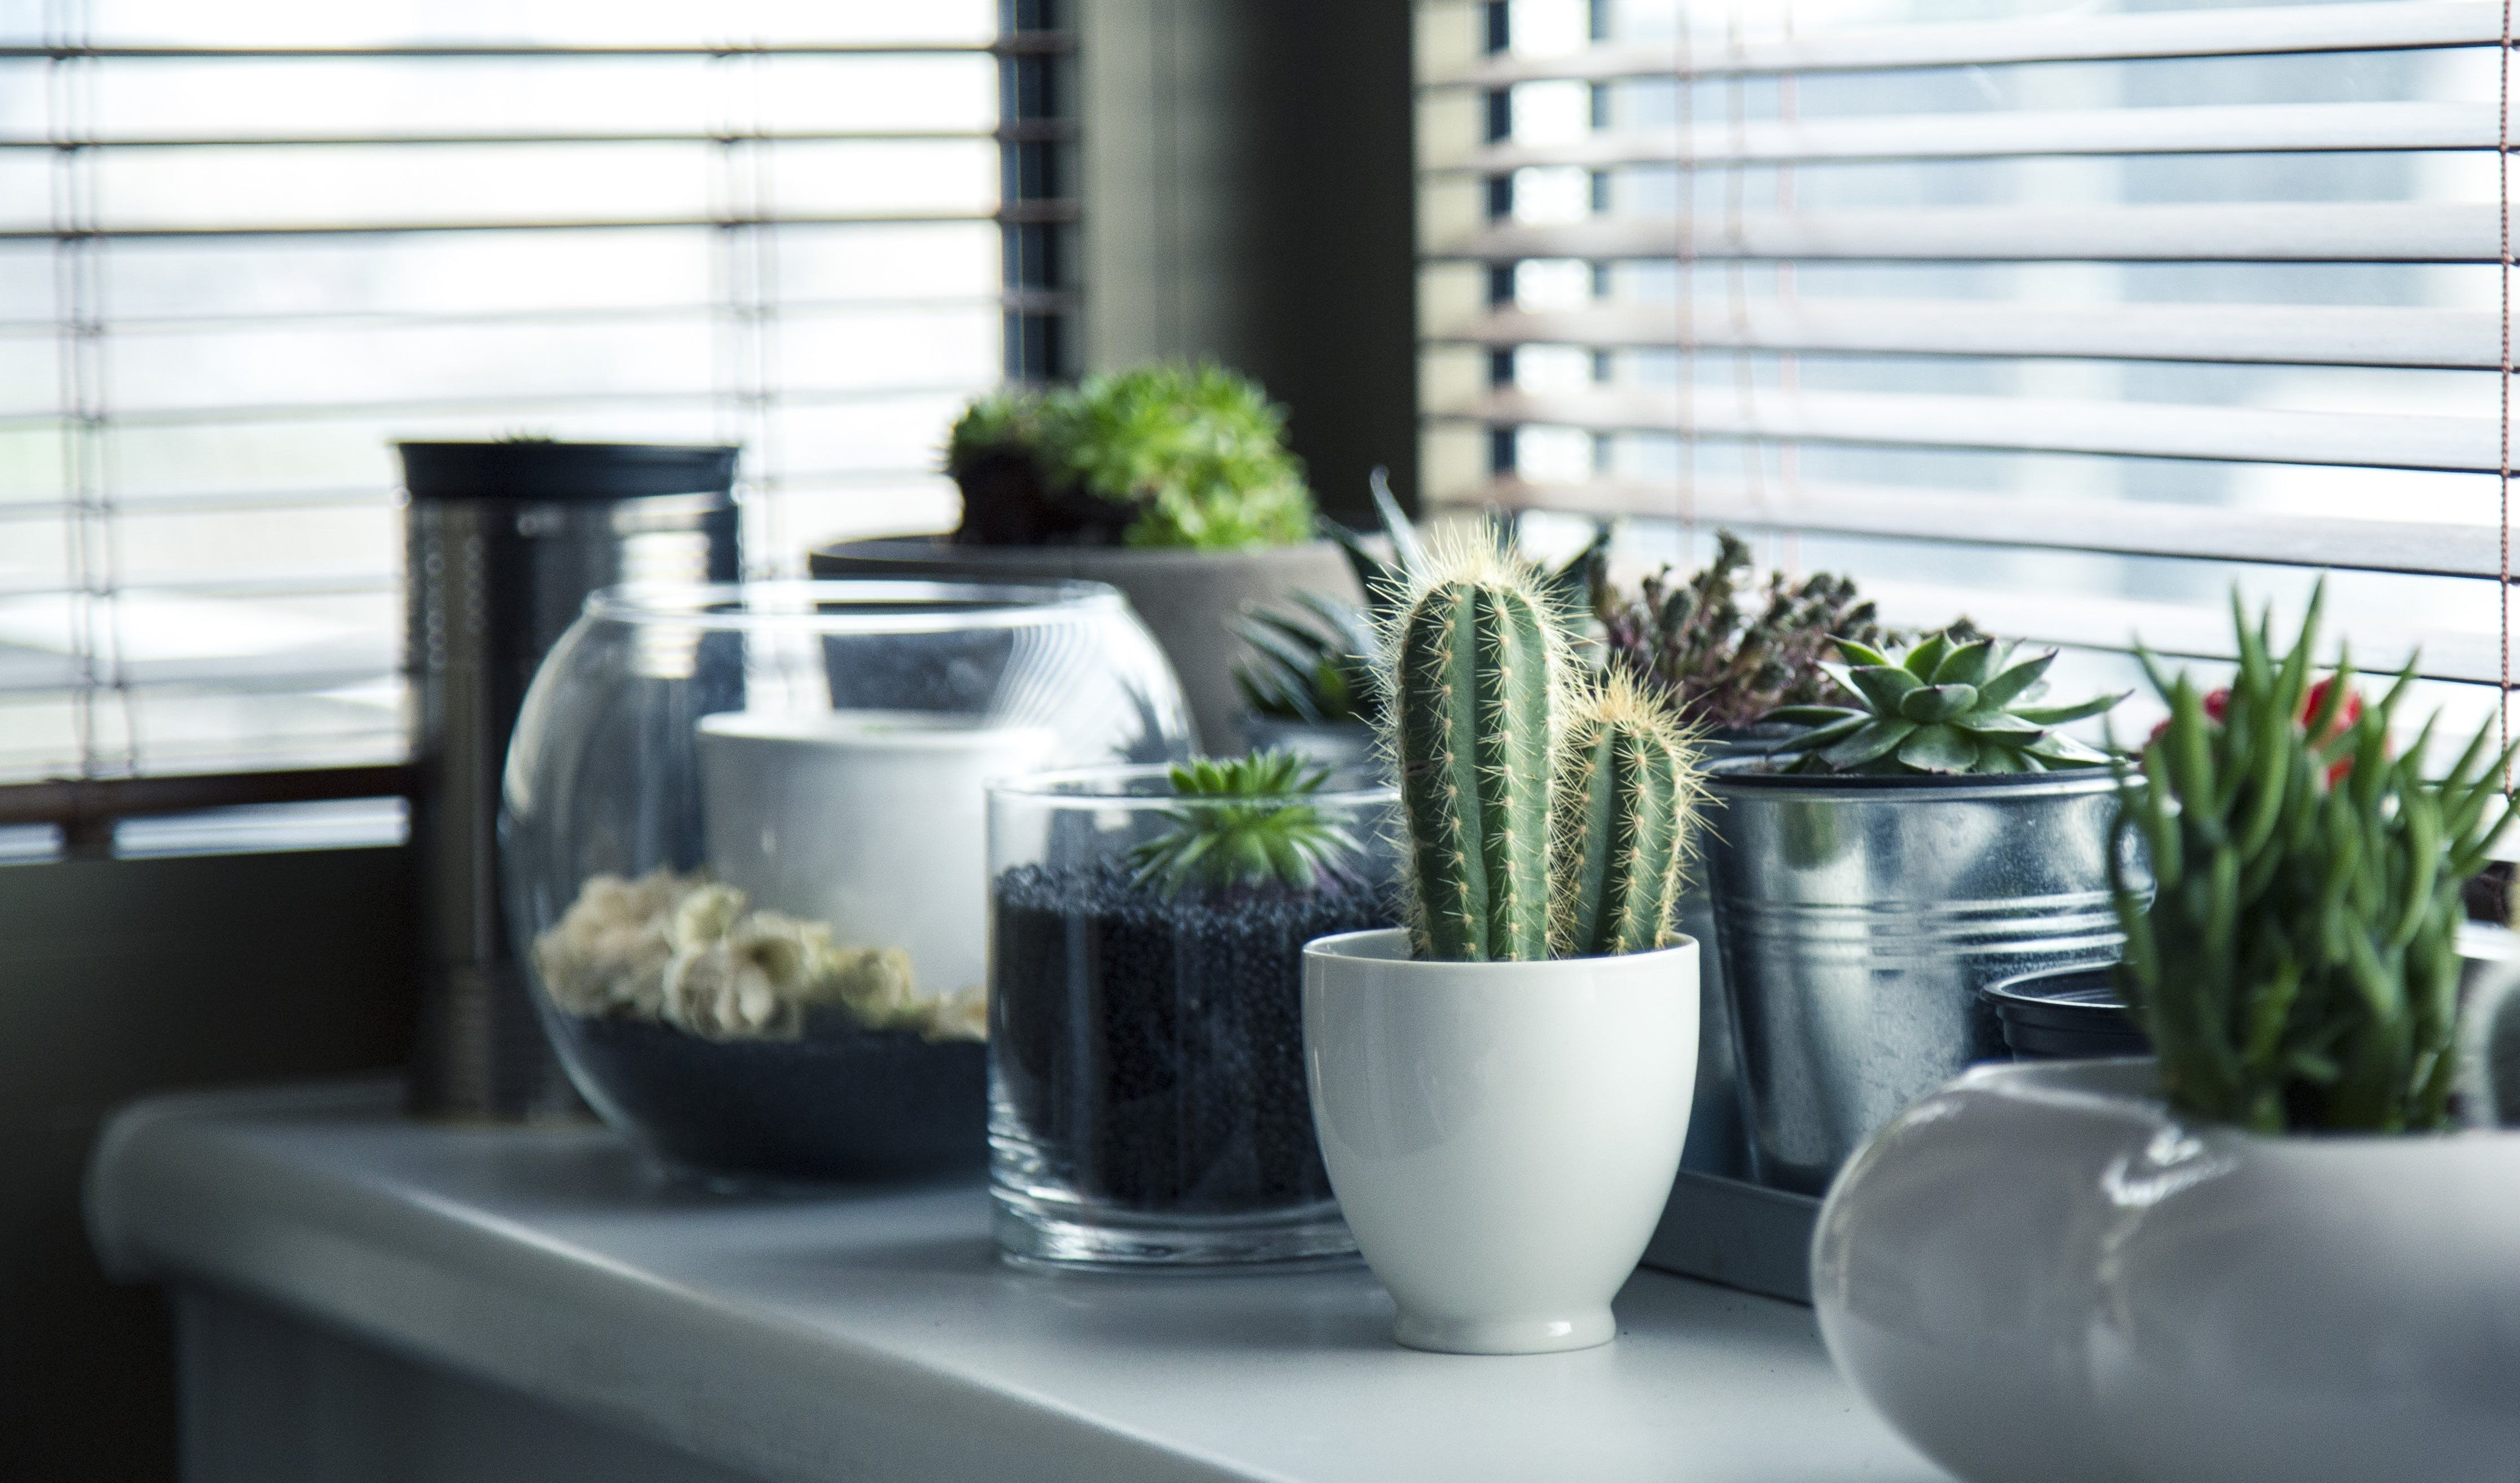 Cactus Plant on Top White Table